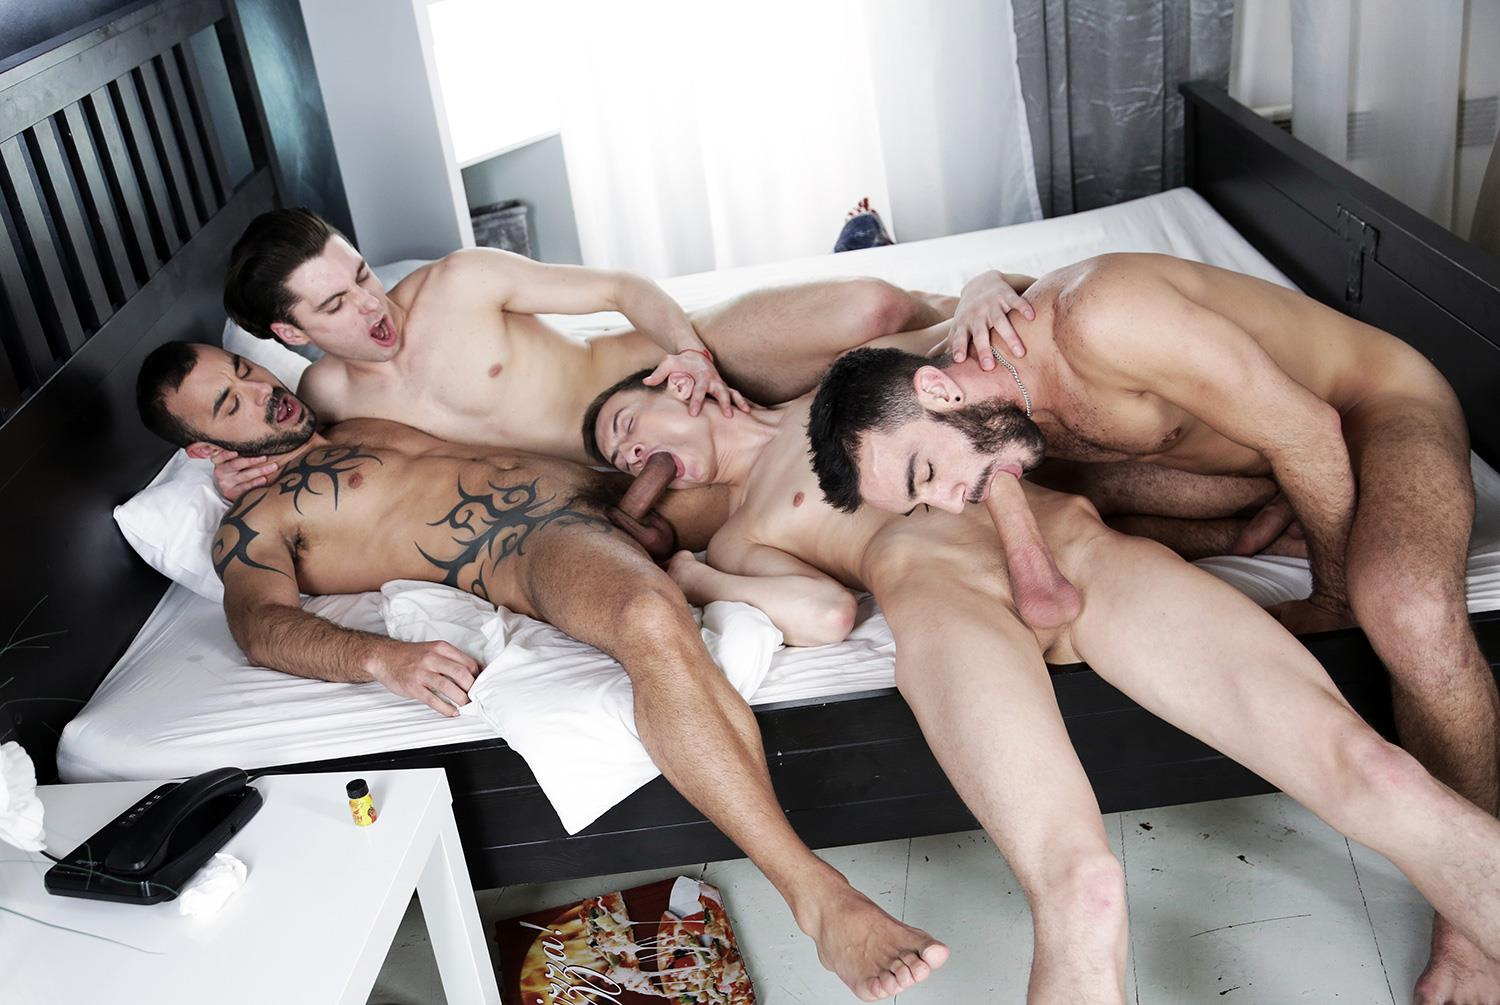 Staxus-Alejandro-Alvarez-and-Jace-Reed-and-Johny-Cruz-and-Xavi-Duran-Triple-Penetration-Bareback-Amateur-Gay-Porn-08 Twink Johny Cruz Gets Triple Penetrated Bareback With 3 Big Uncut Cocks